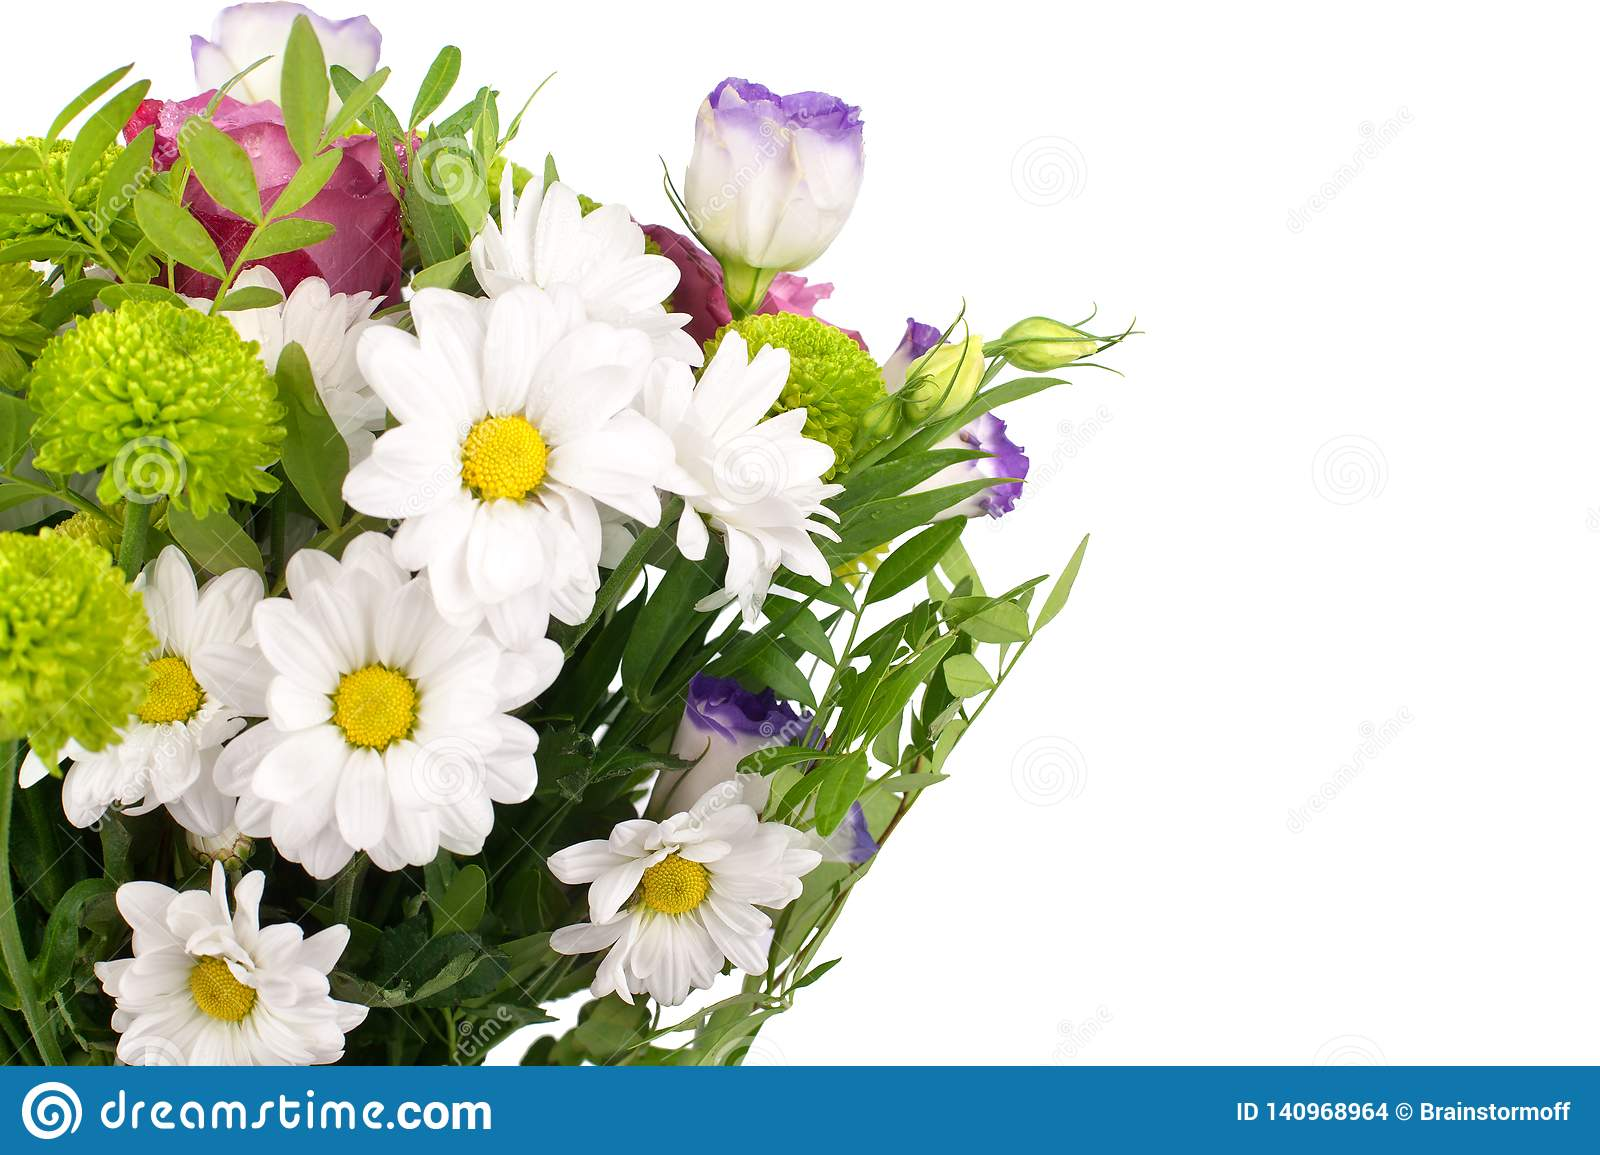 Bouquet of flowers white chrysanthemums, pink roses with green leaves on white background isolated close up